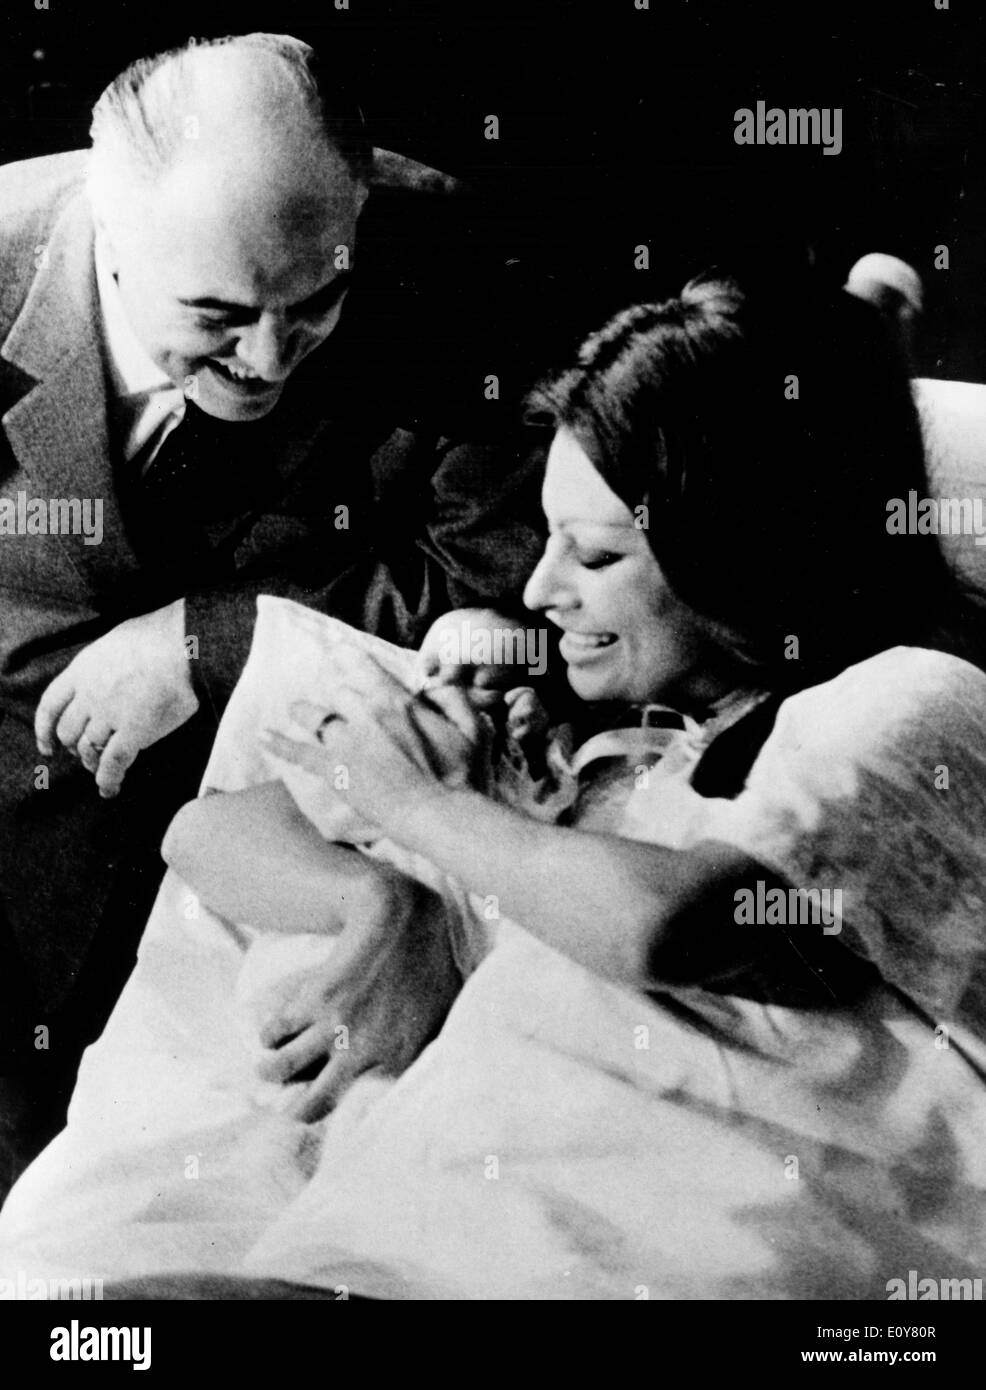 Actress Sophia Loren and Carlo Ponti have baby boy - Stock Image